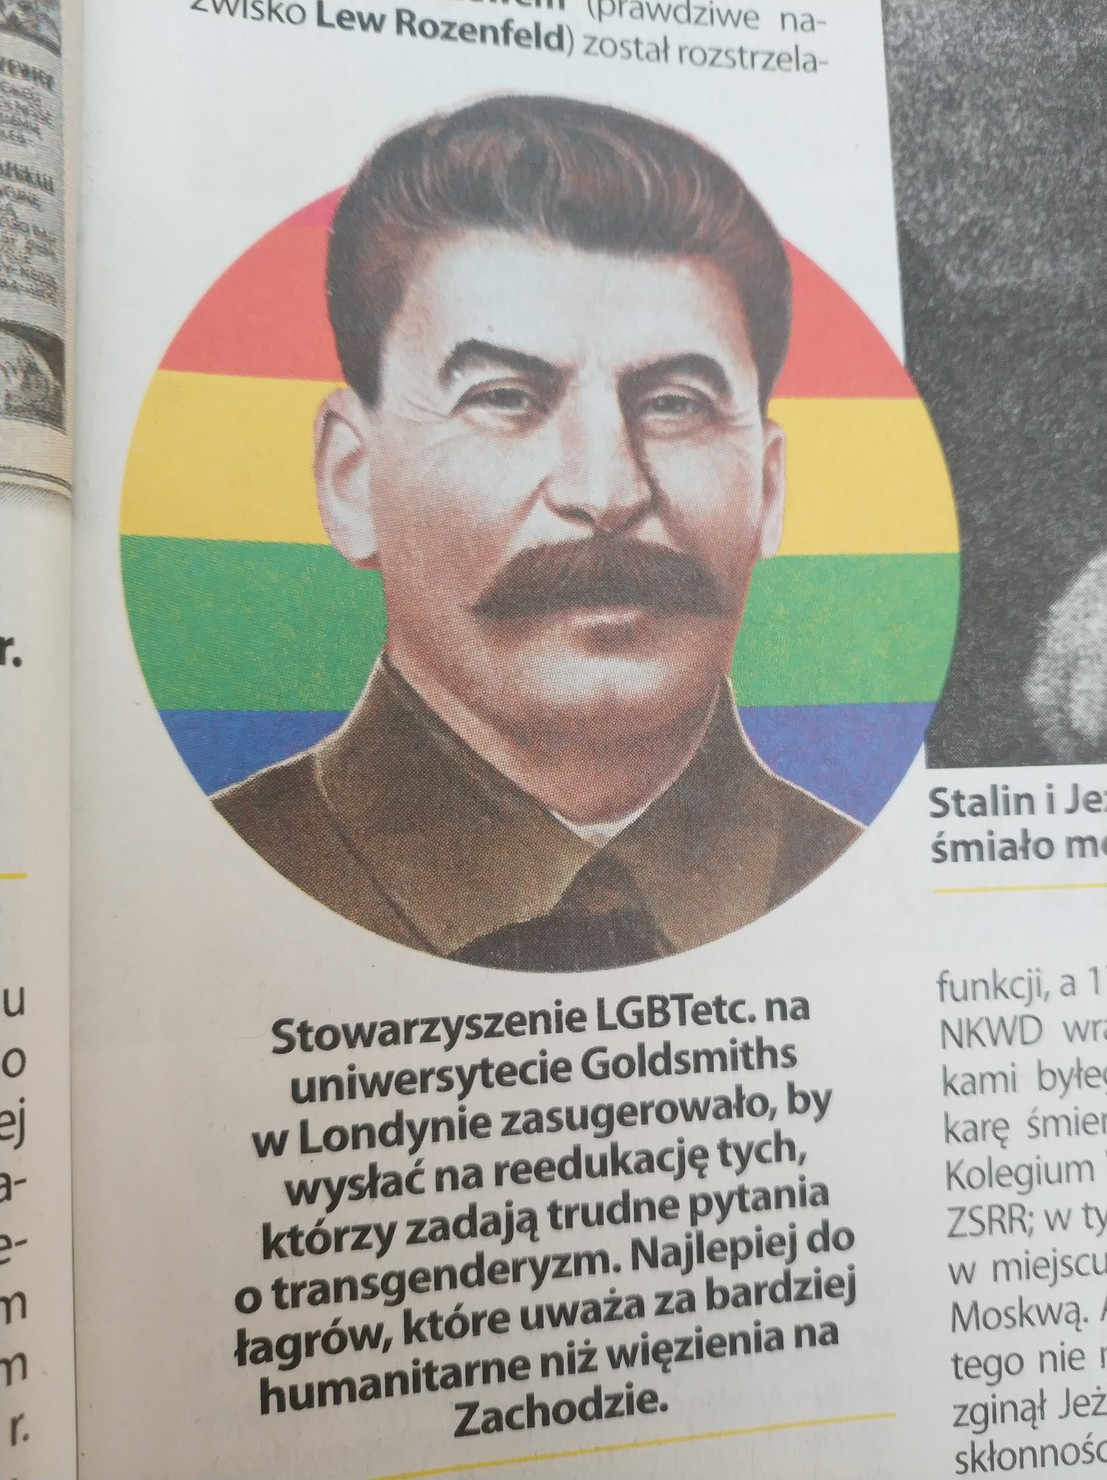 Stalin in front of a gay flag